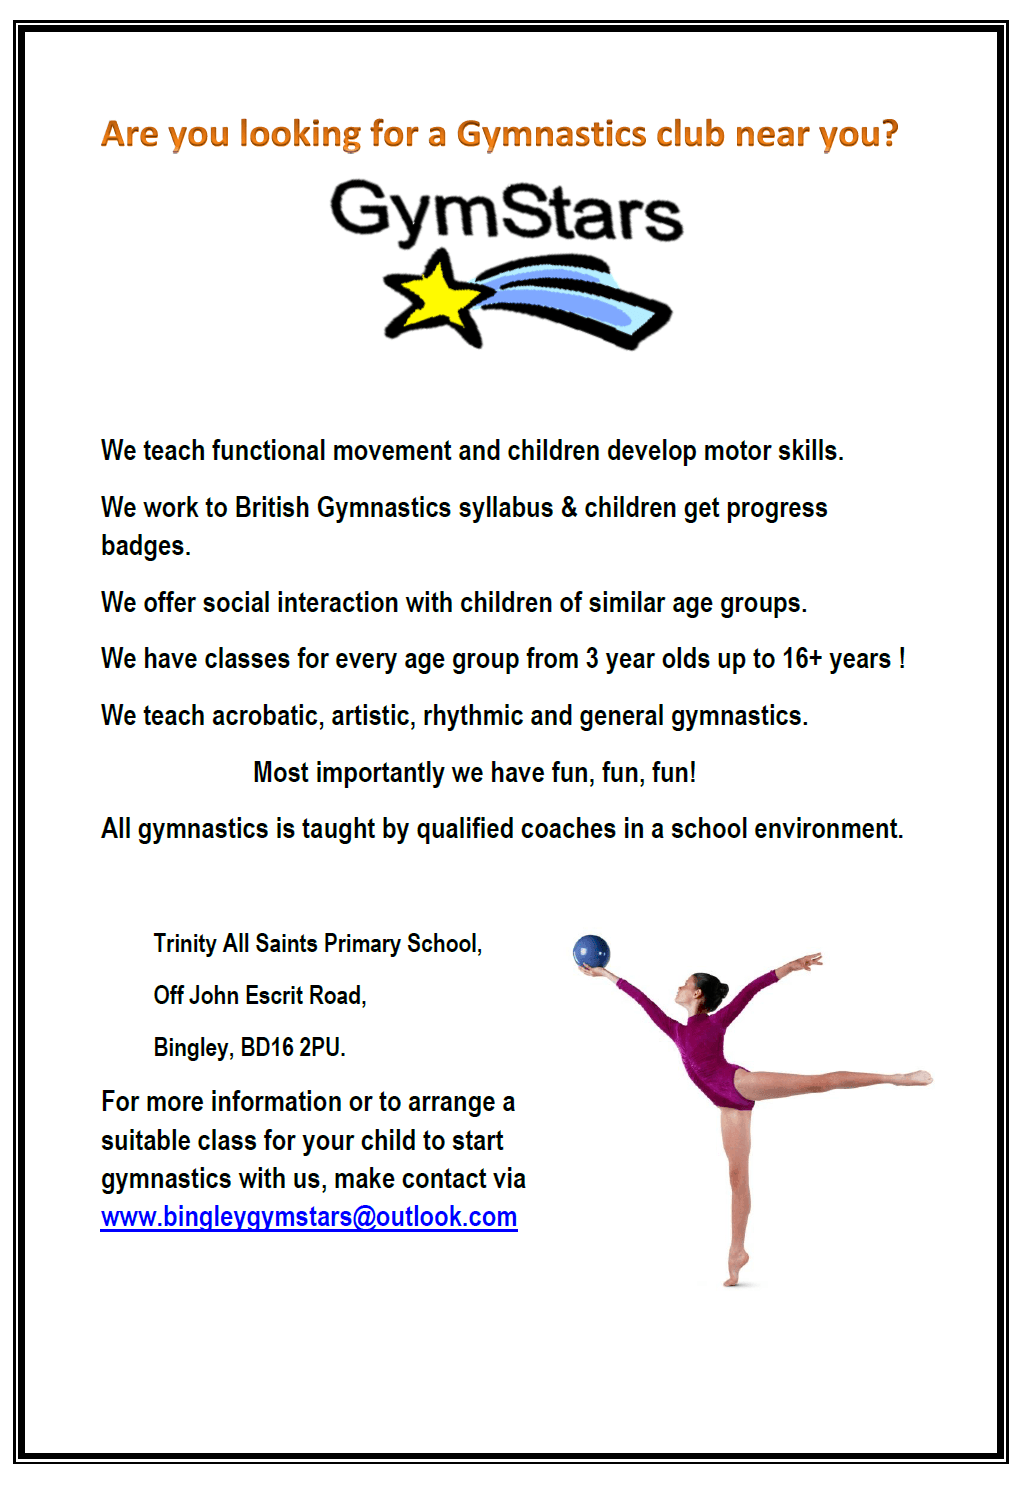 Looking for a gymnastics club in Bingley at Trinity All Saints Primary School